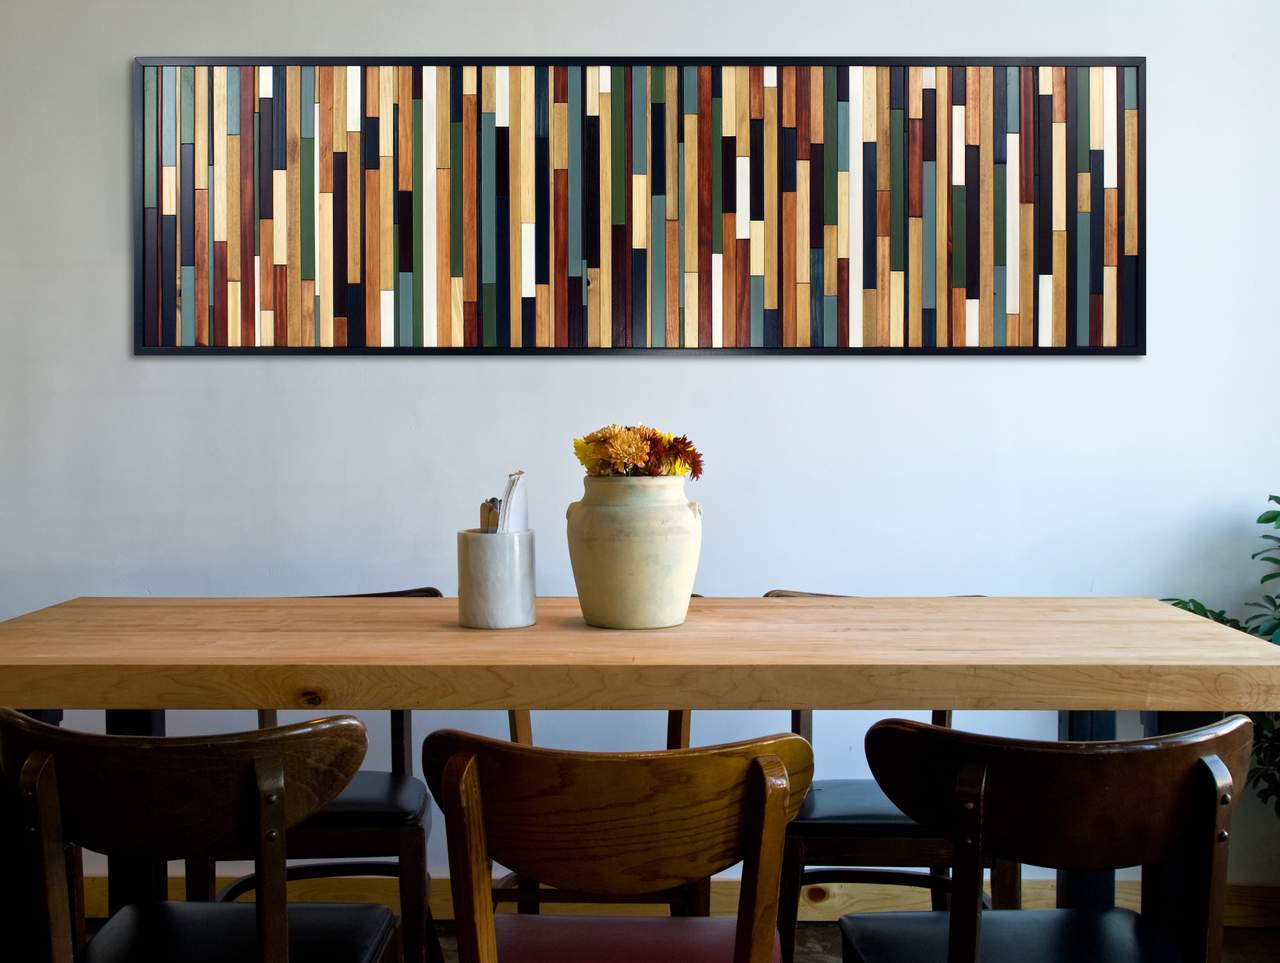 Sea Crest wood wall art